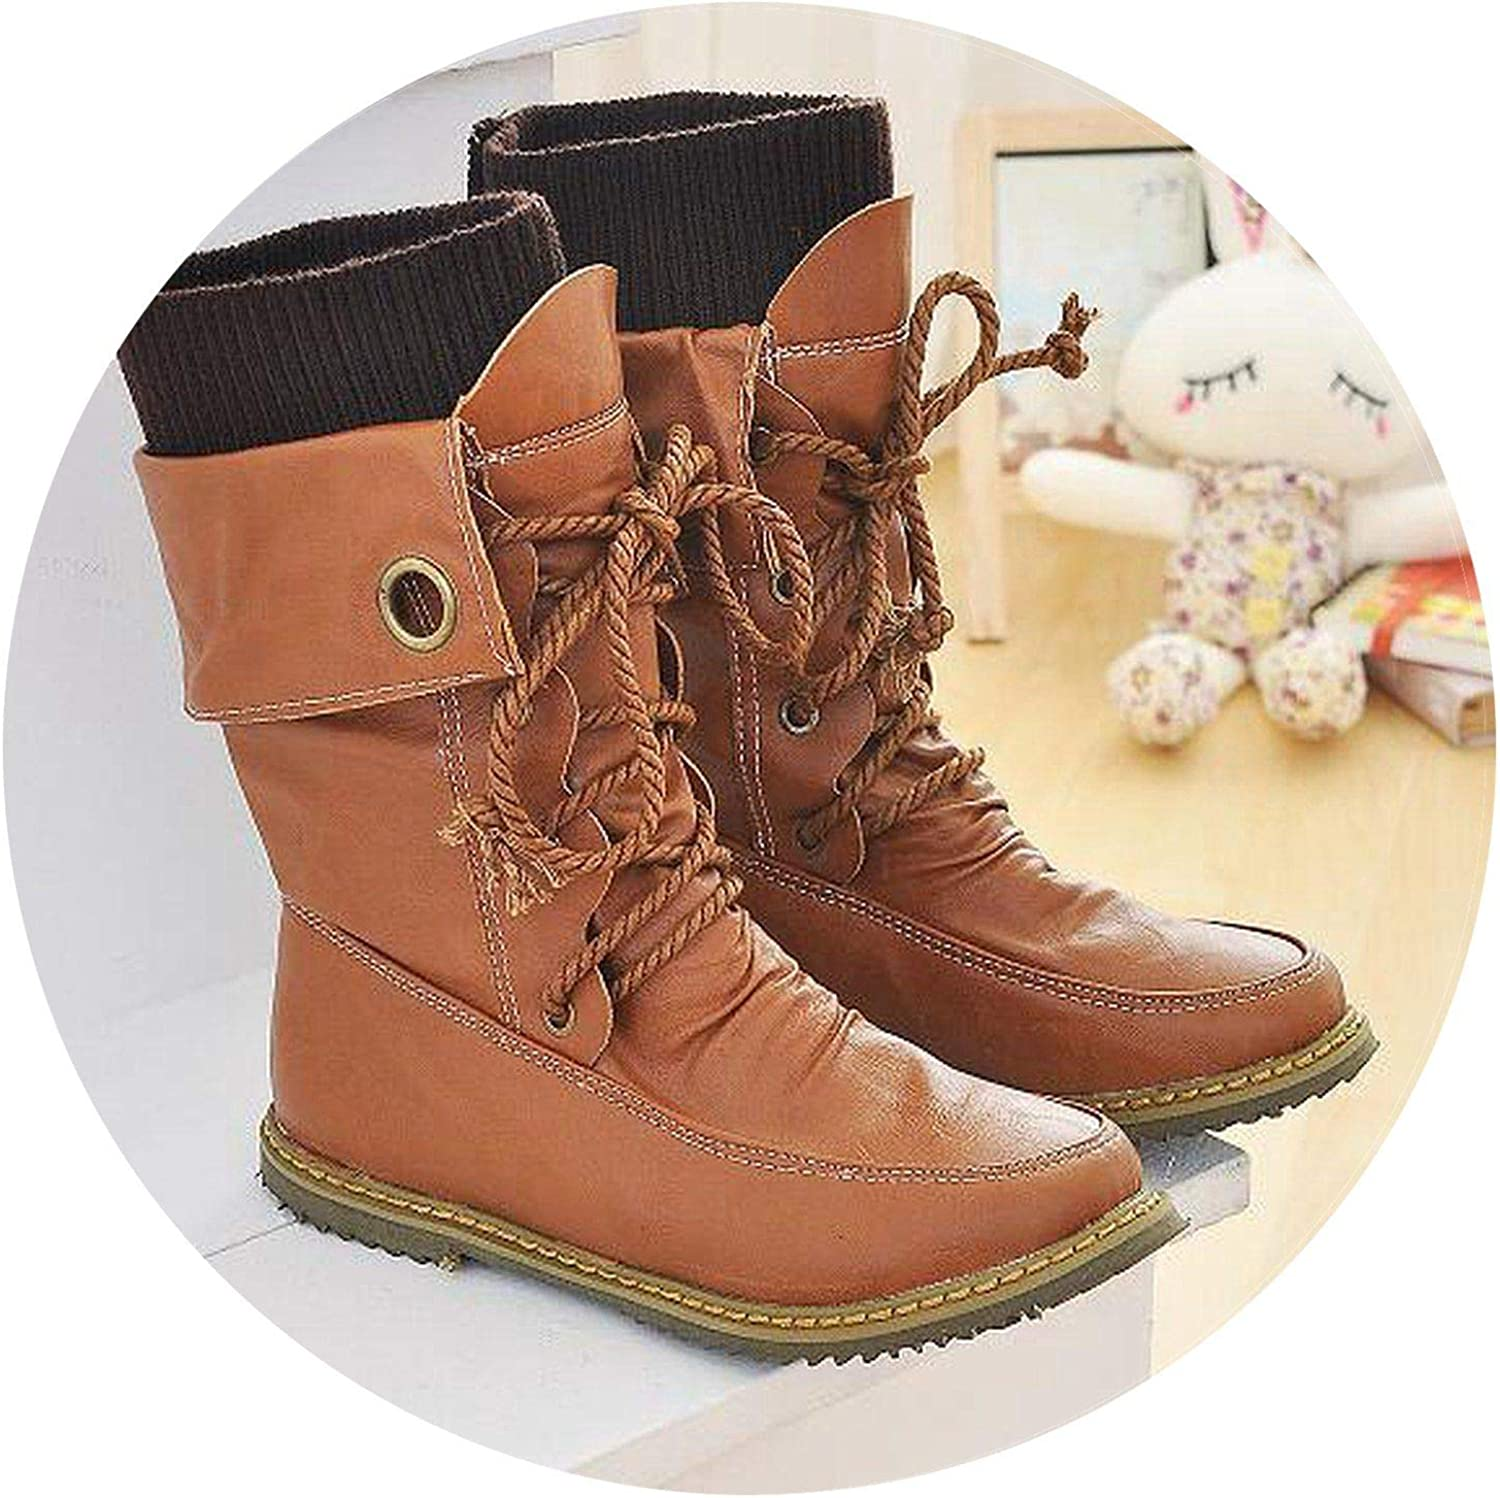 Summer-lavender Winter Women Boots Mid PU Leather Motorcycle Boots for Woman Snow Boots Lace-up Martin Boots Big